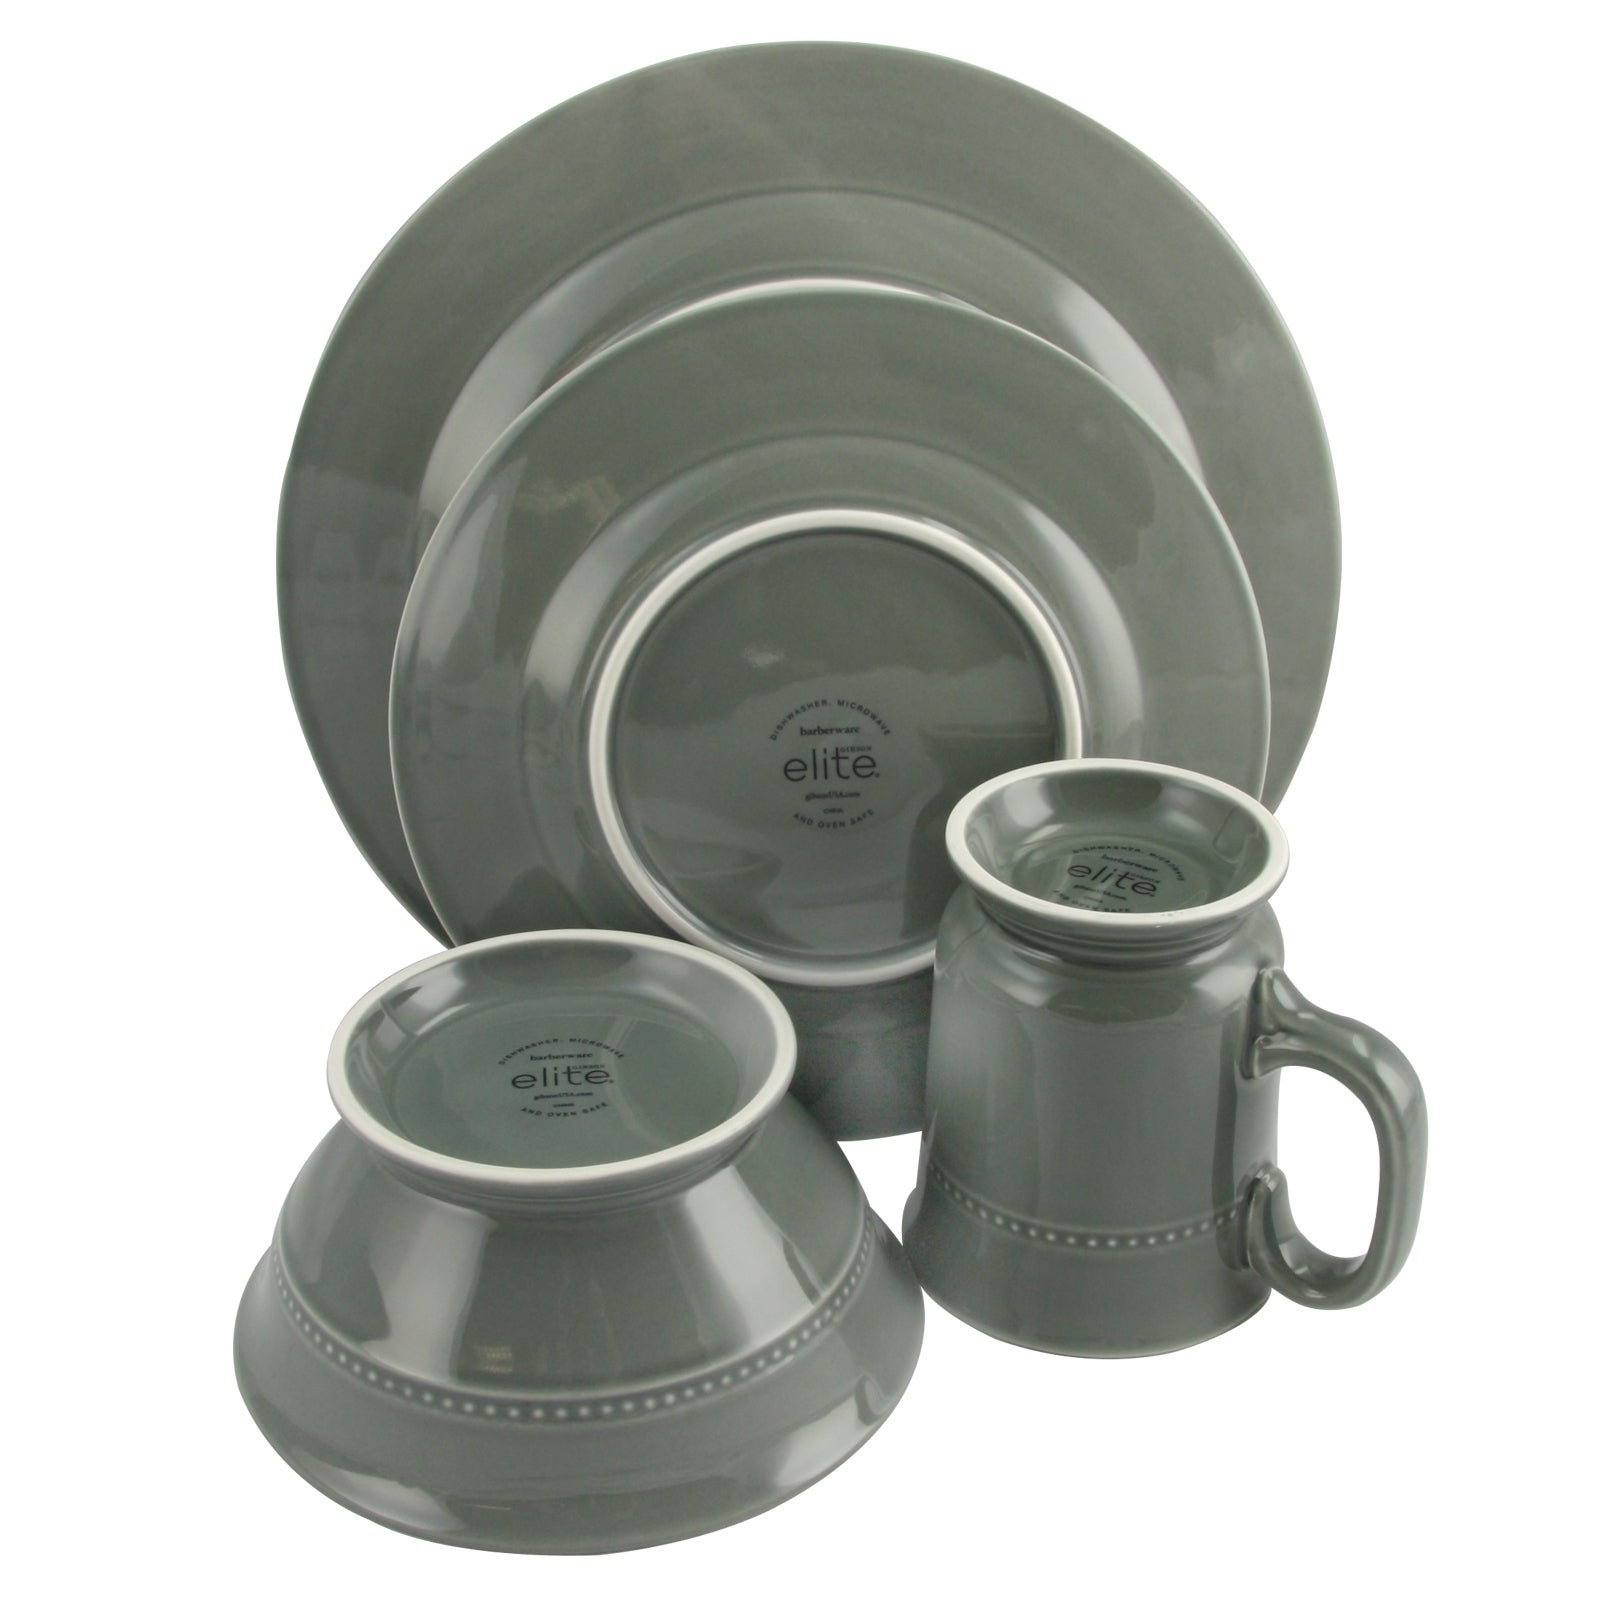 Gibson Barberware 16 Piece Dinnerware Set in Grey - Free Shipping Today - Overstock - 24263842  sc 1 st  Overstock.com & Gibson Barberware 16 Piece Dinnerware Set in Grey - Free Shipping ...